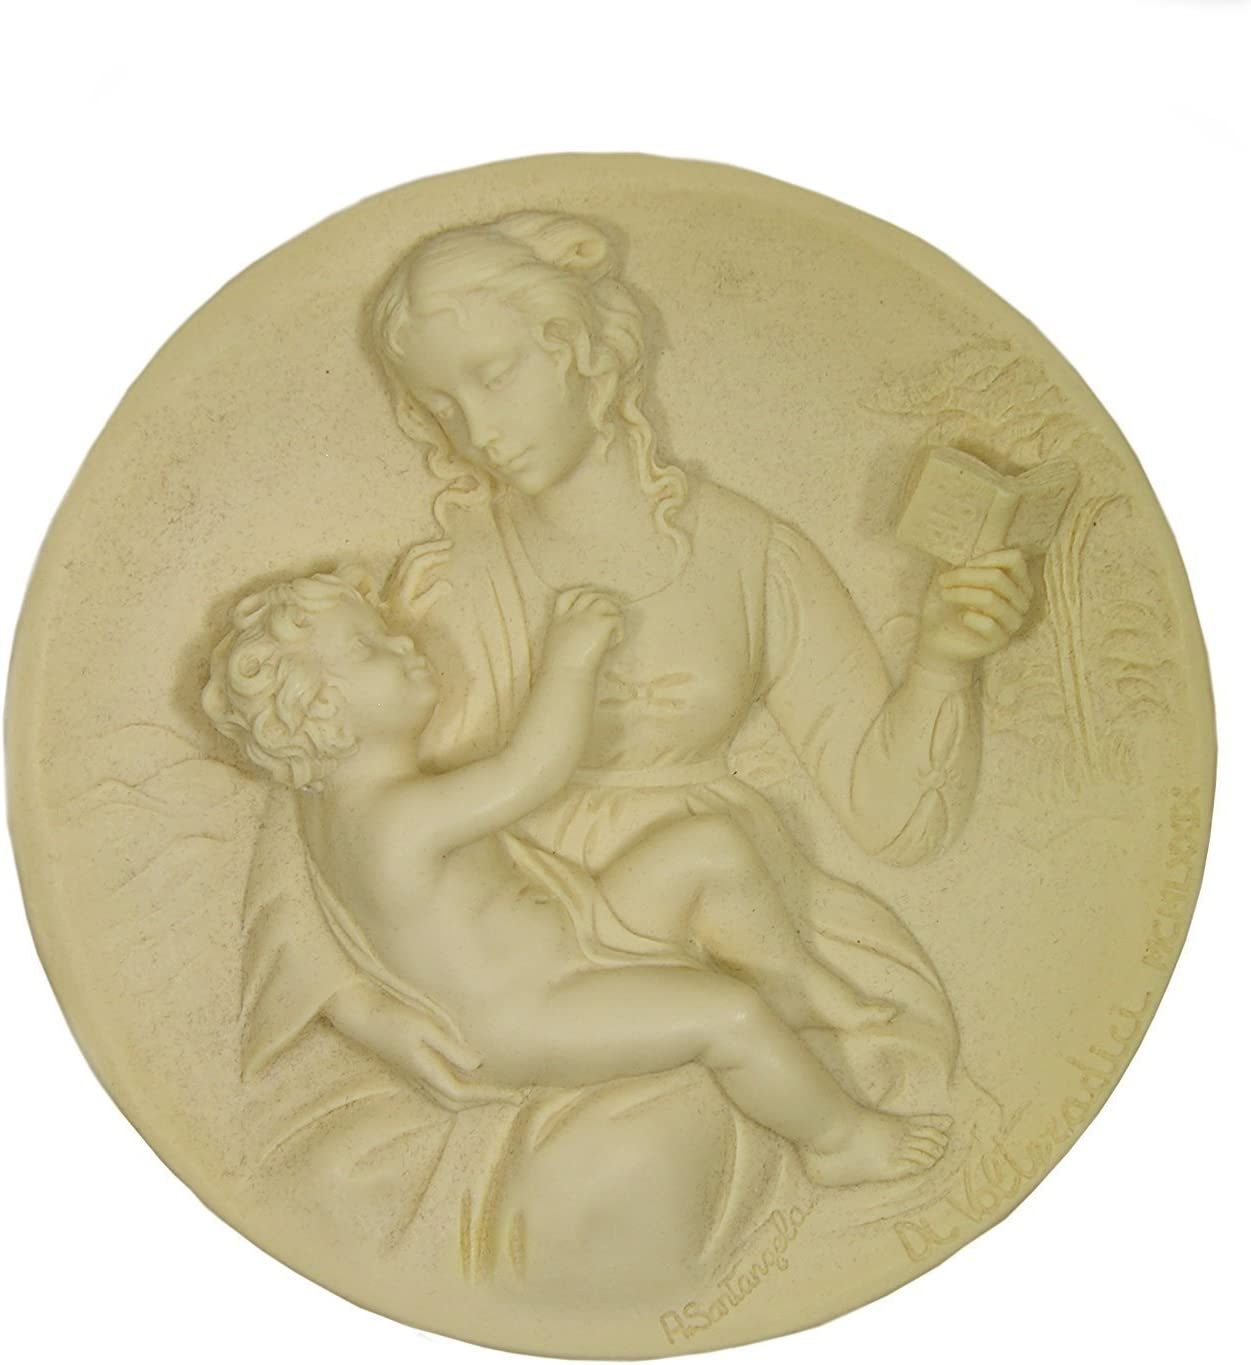 Bradford Exchange The Serene Madonna By A Santangela Handcrafted Solid Ivory Alabaster Plate 1979 Home Kitchen Amazon Com